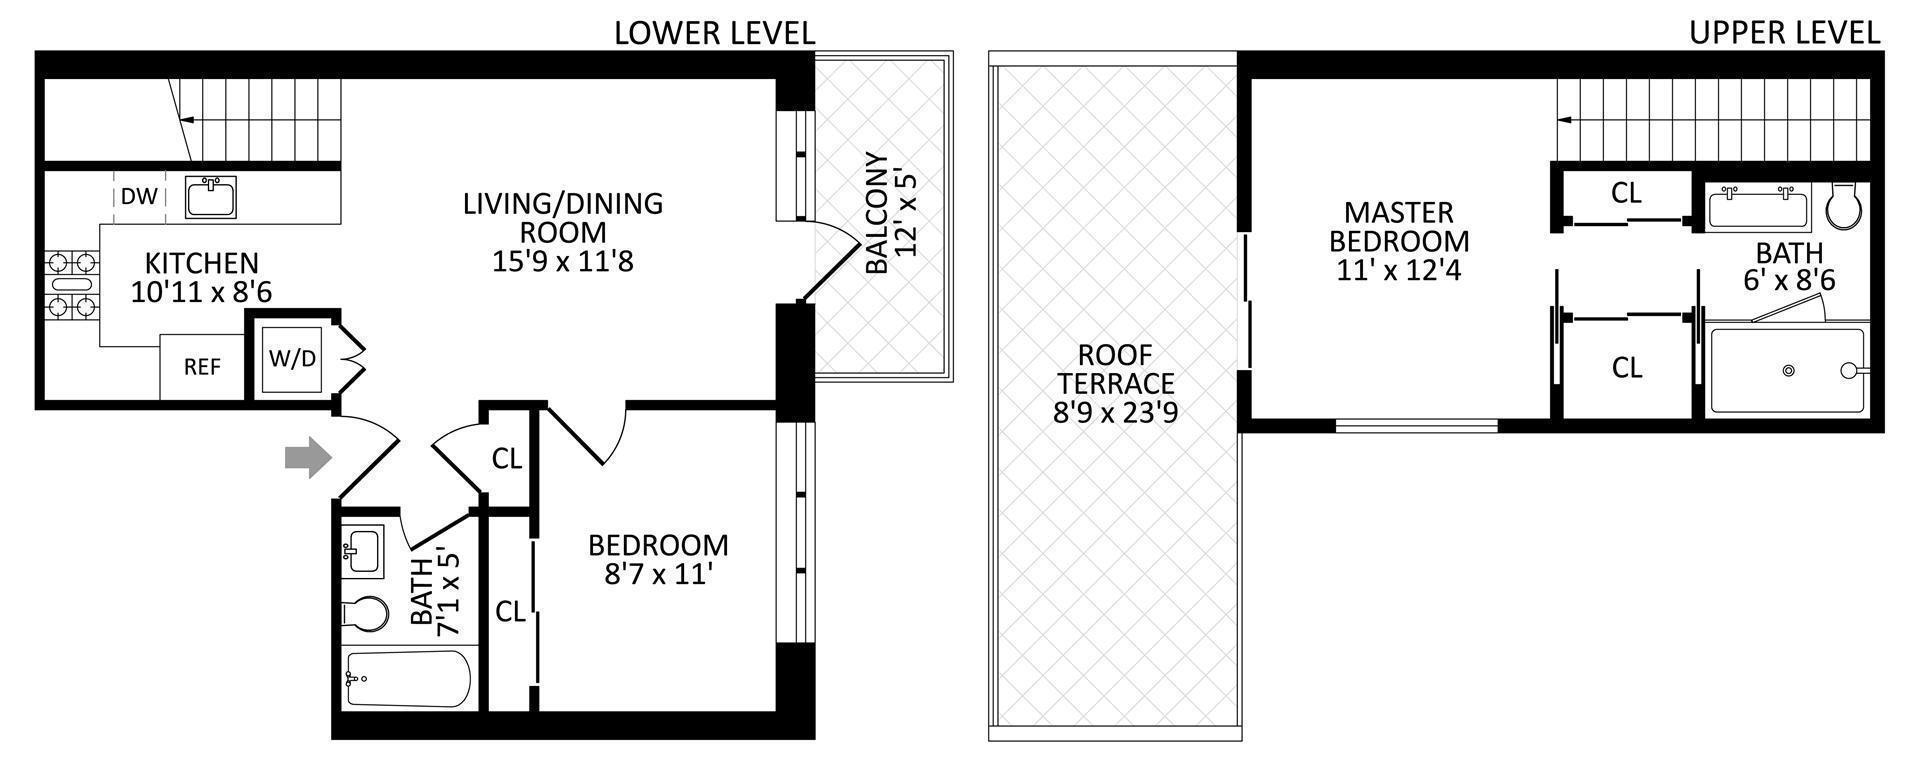 Floor plan of 27 Dodworth St, 4F - Bushwick, New York